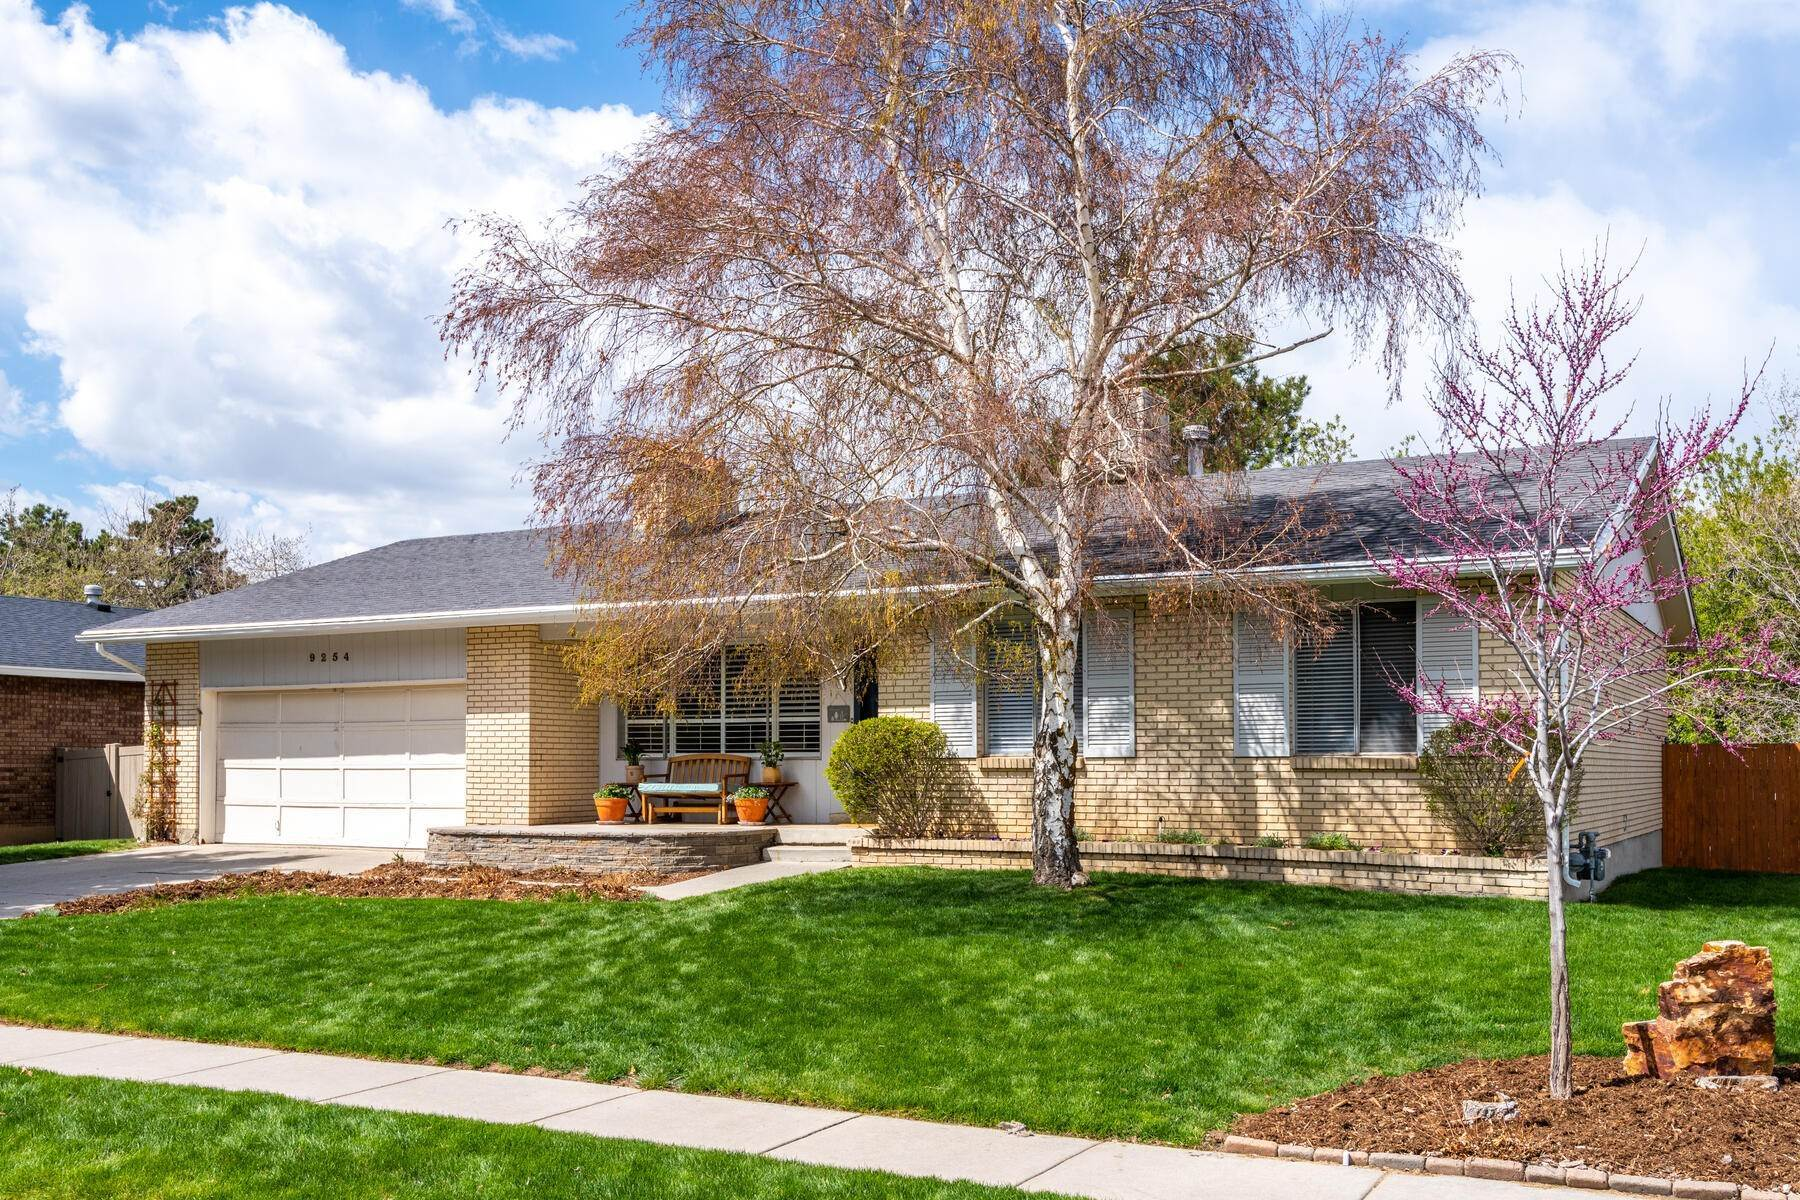 Property for Sale at Quiet & Scenic Sandy Suburb 9254 Alvey Ln Sandy, Utah 84093 United States